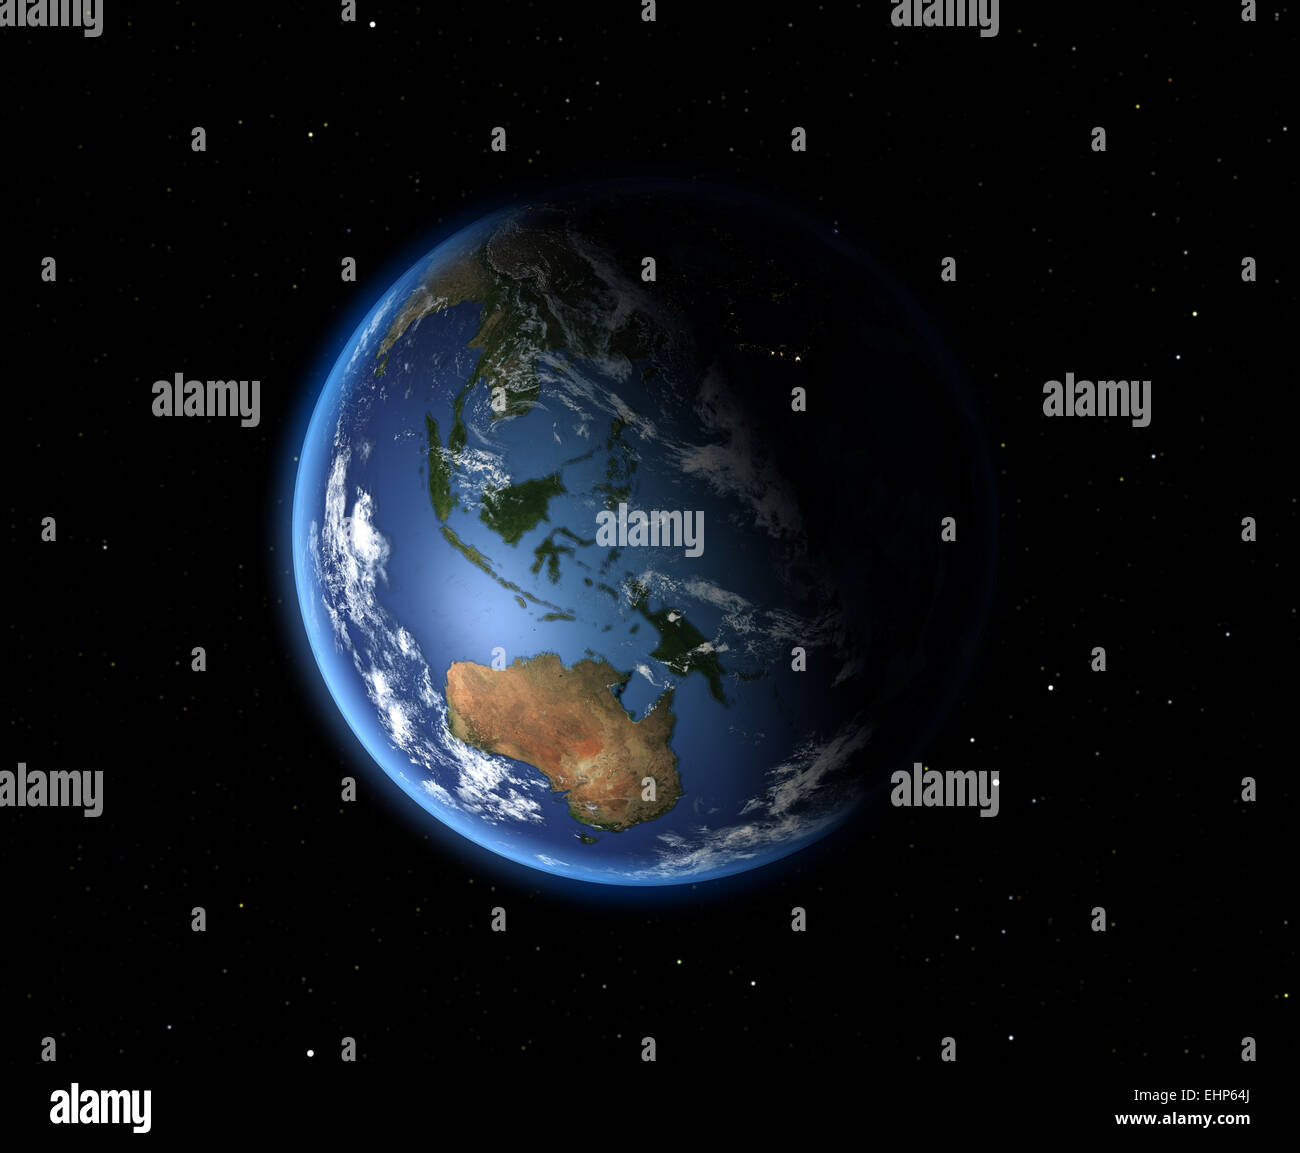 The Earth from space. Australia and Oceania - Stock Image